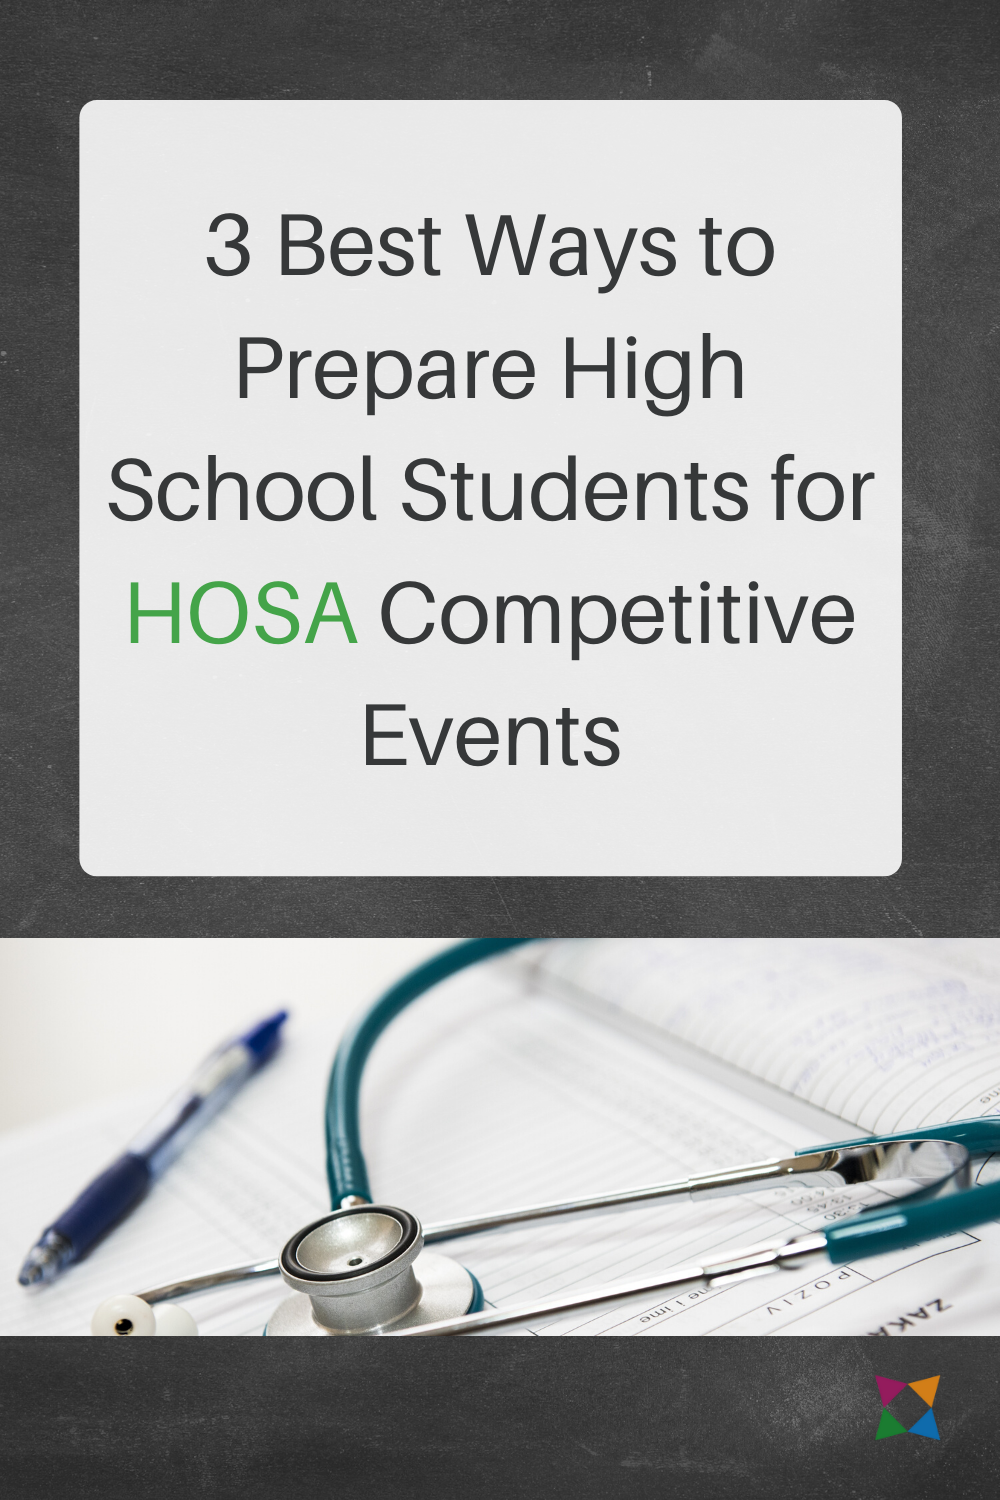 3 Best Ways to Prepare High School Students for HOSA